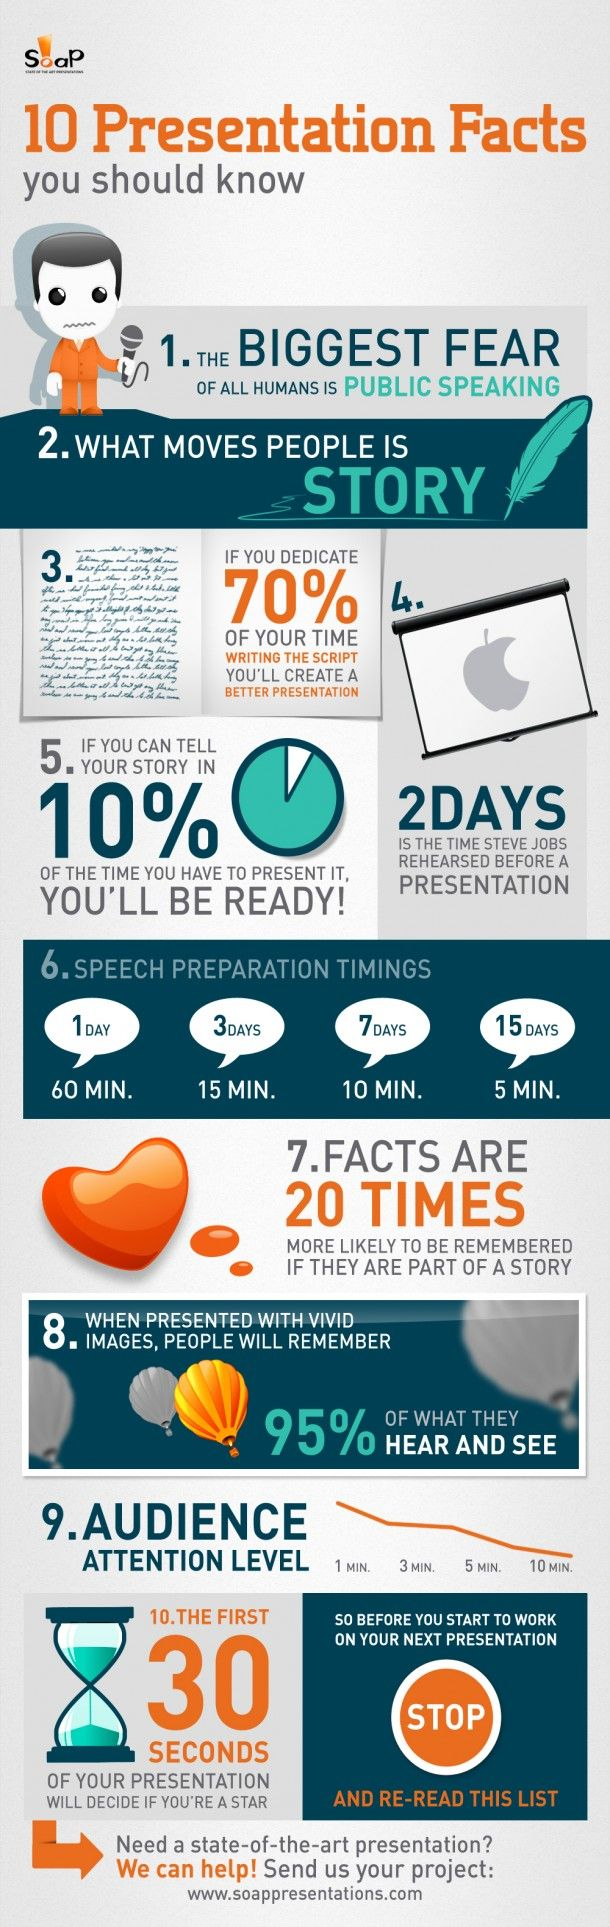 public speaking infographic the muse infographic courtesy of soap presentations photo of microphone courtesy of shutterstock